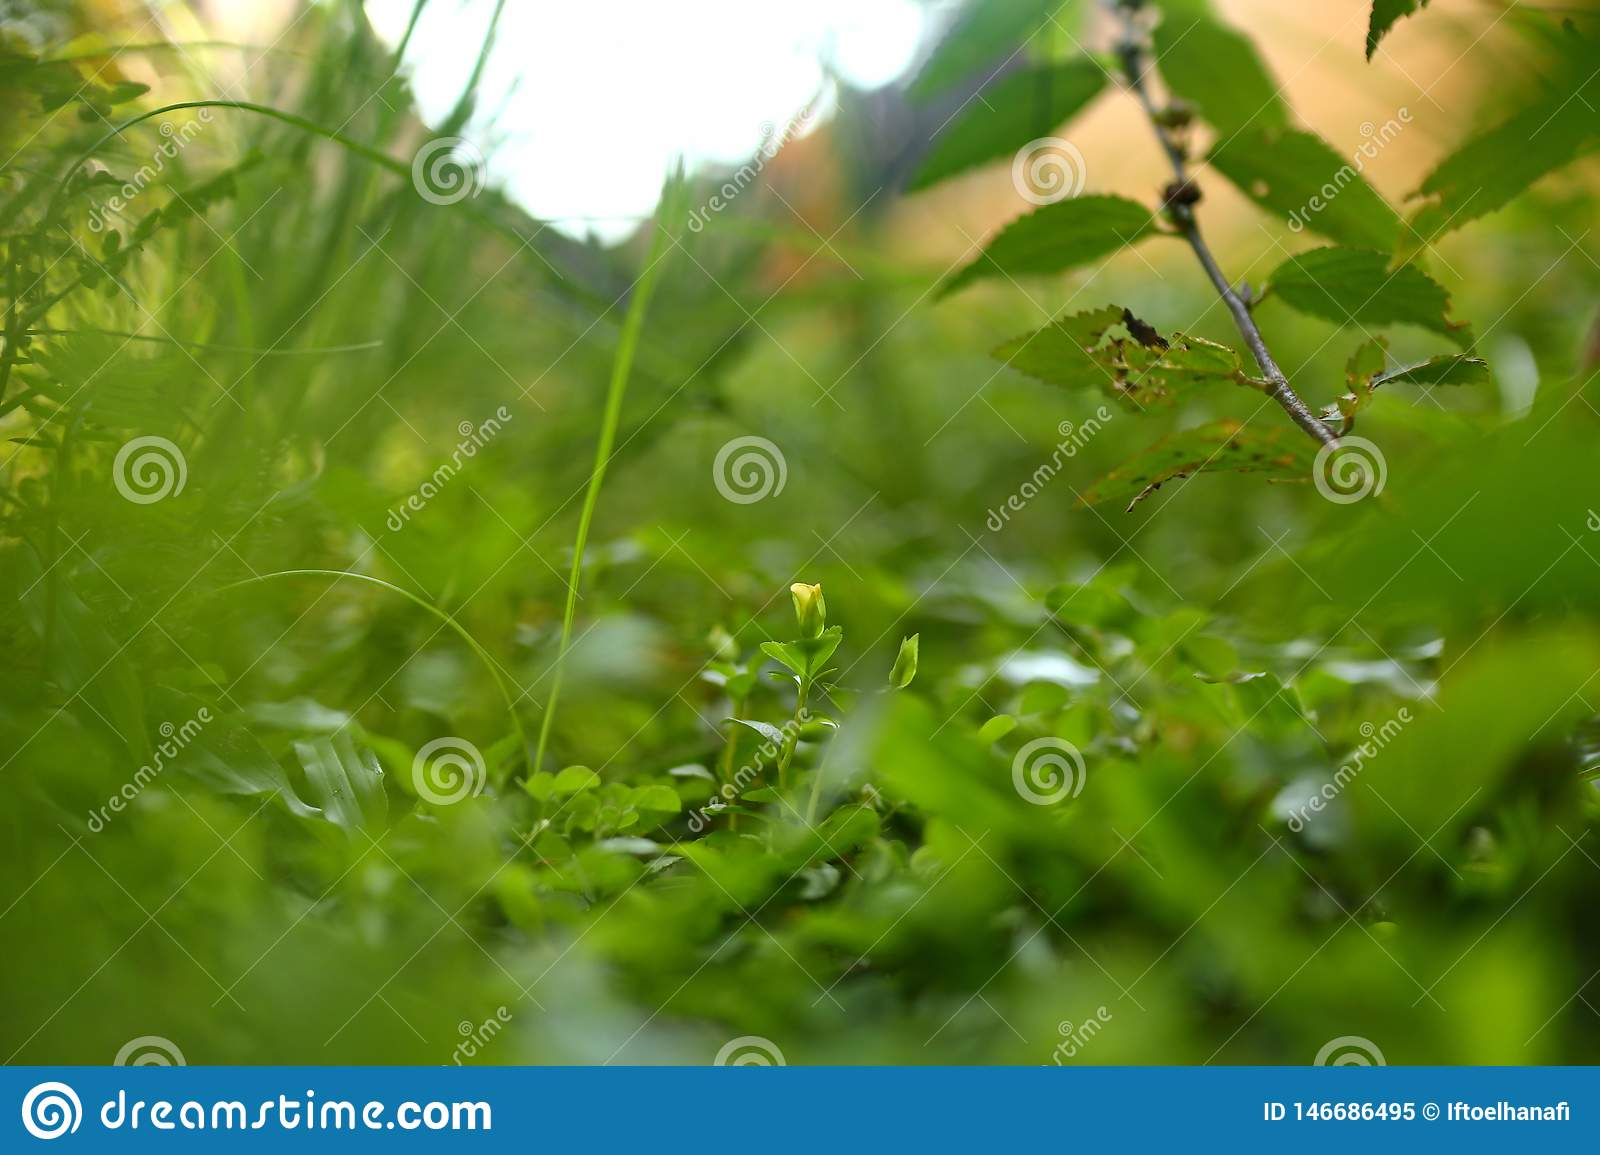 Weeds on the lawn, photographed with focus selection